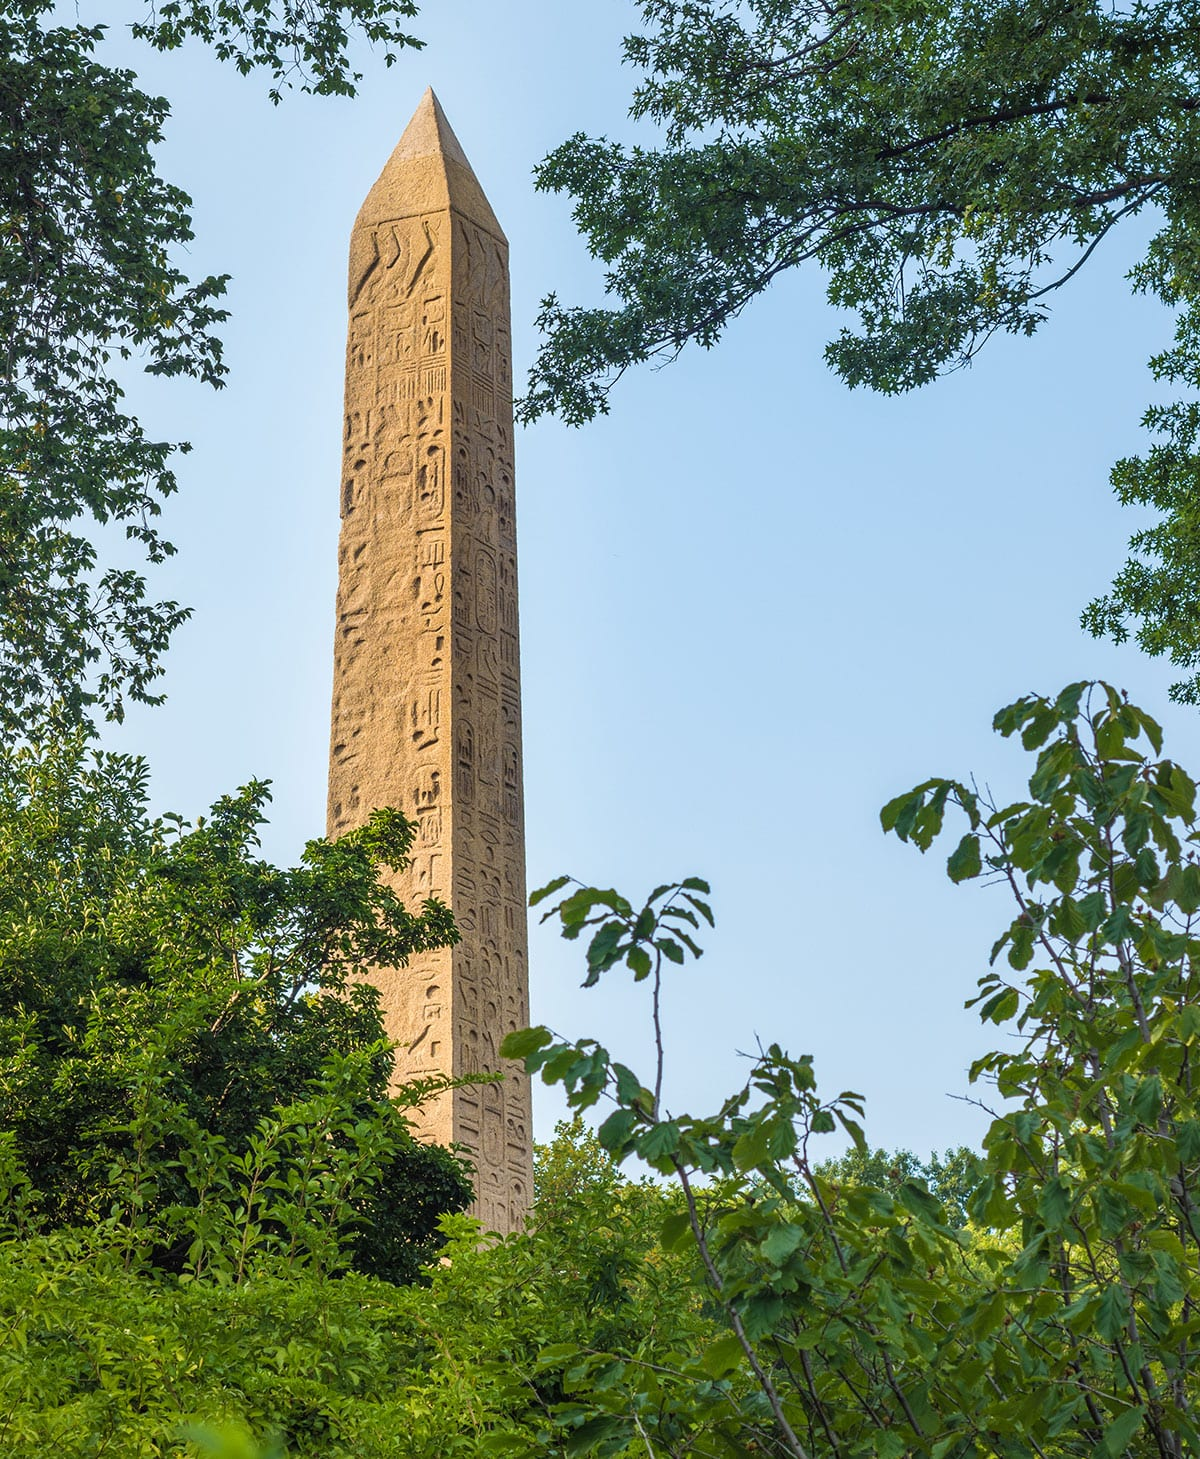 Things-to-Do-in-Central-Park-Obelisk